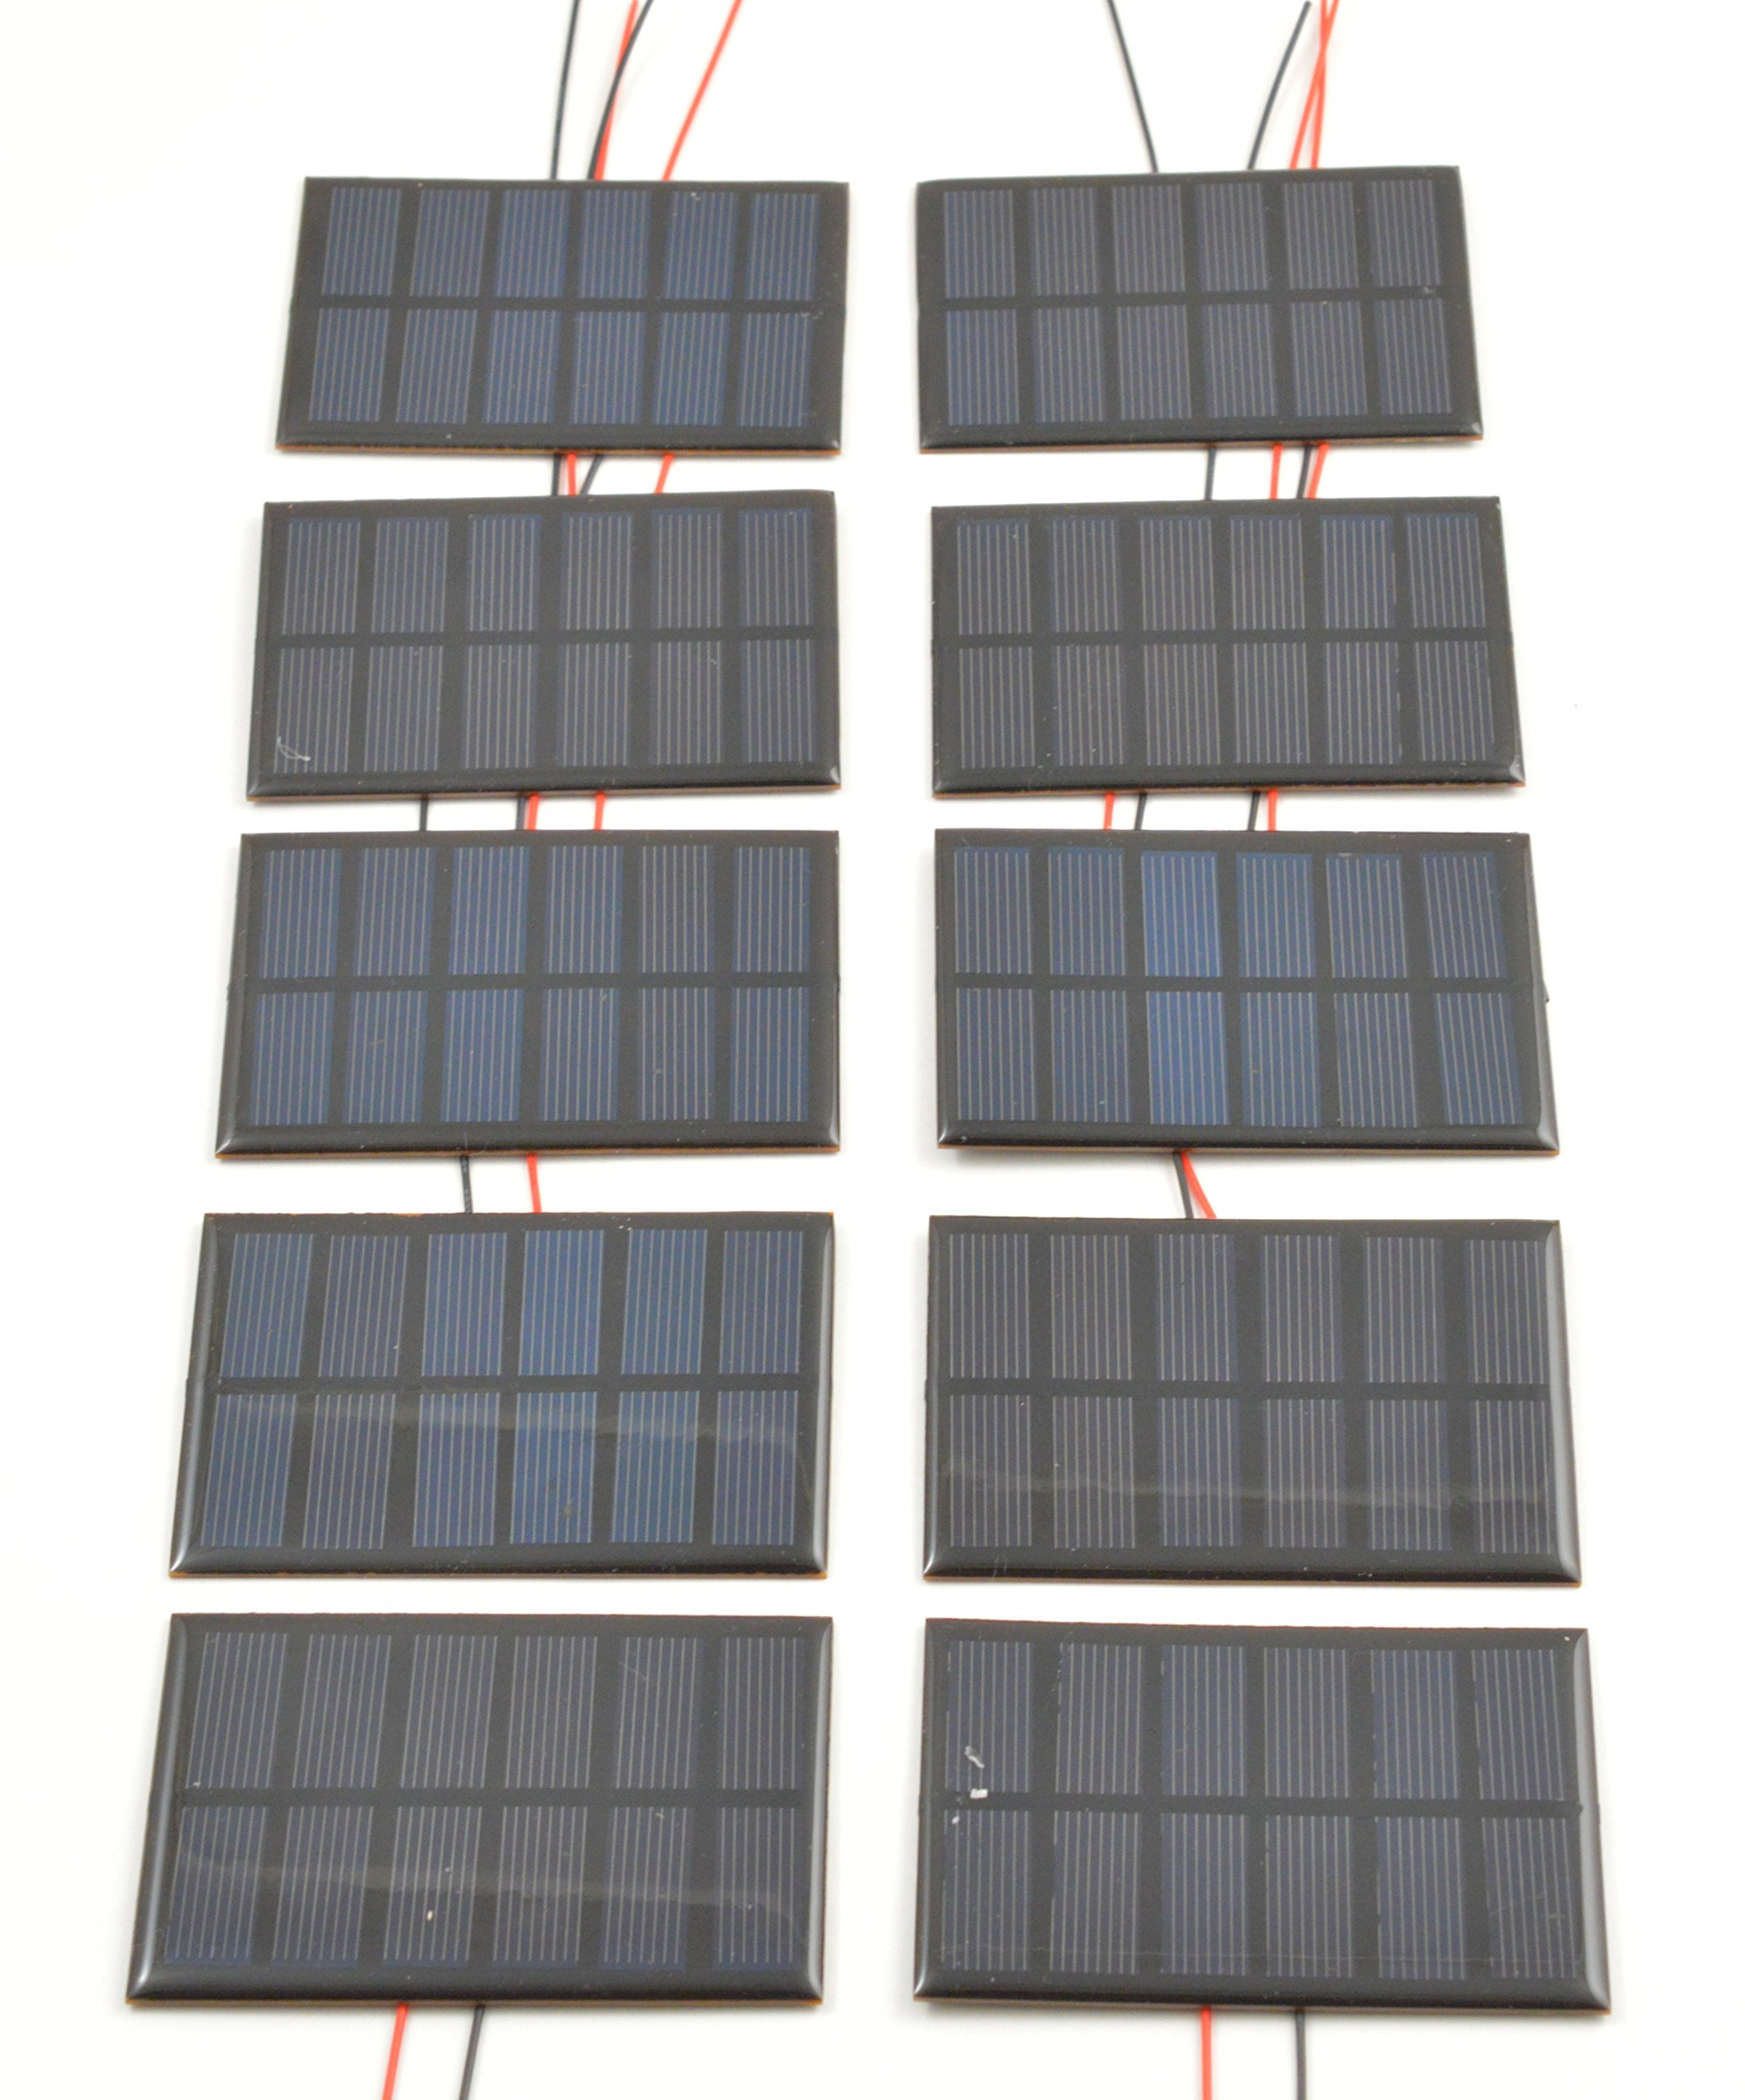 Small Solar Panel 3.0V 200mA with wires-10 pack